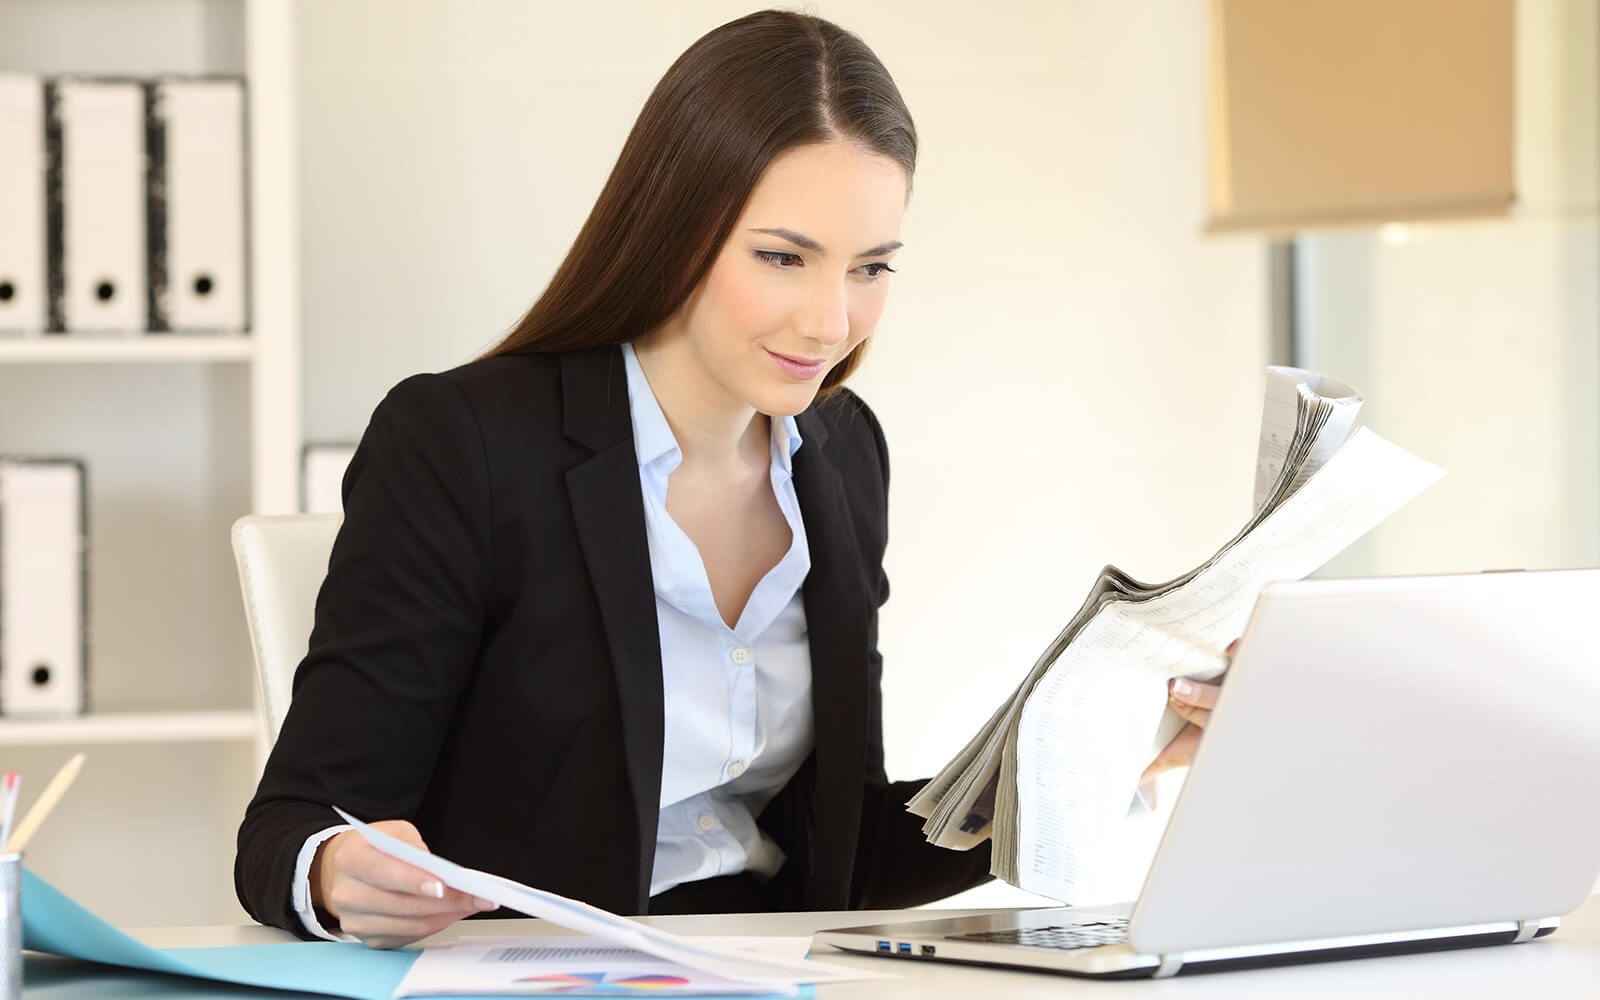 Woman looking through documents